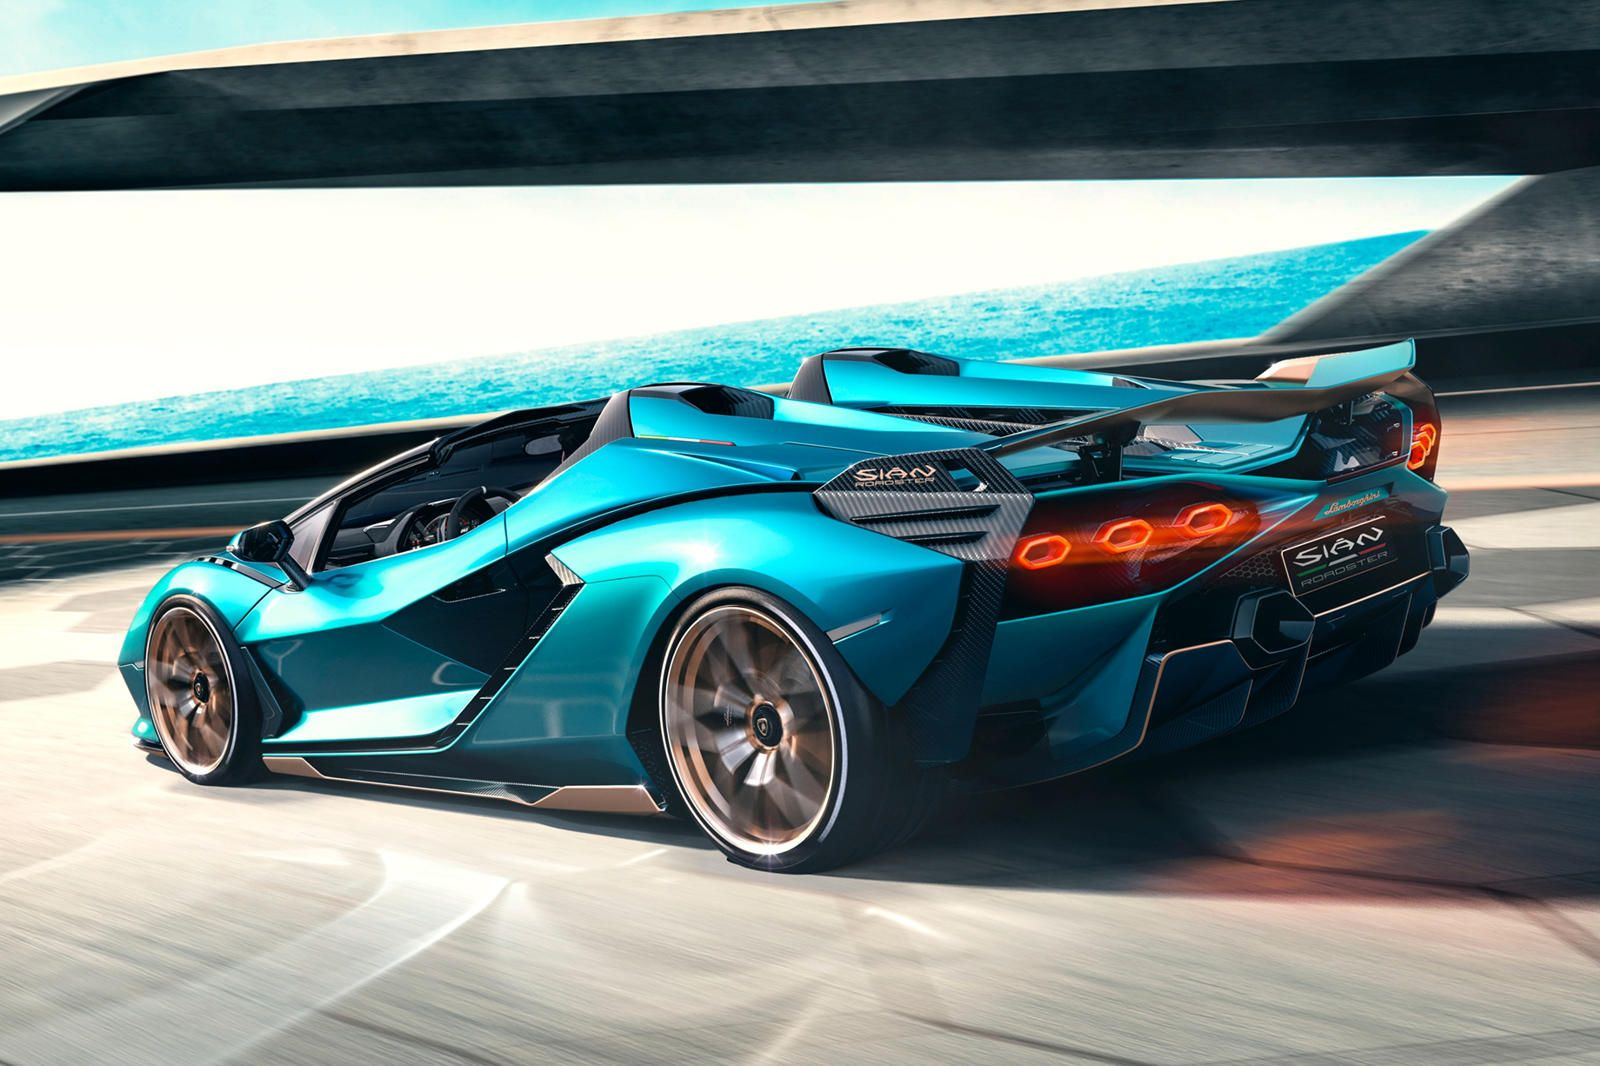 There S Something Lamborghini S Next V12 Supercar Won T Have The Just Revealed Sian Roadster Has It Though In 2020 Super Cars Roadsters Lamborghini